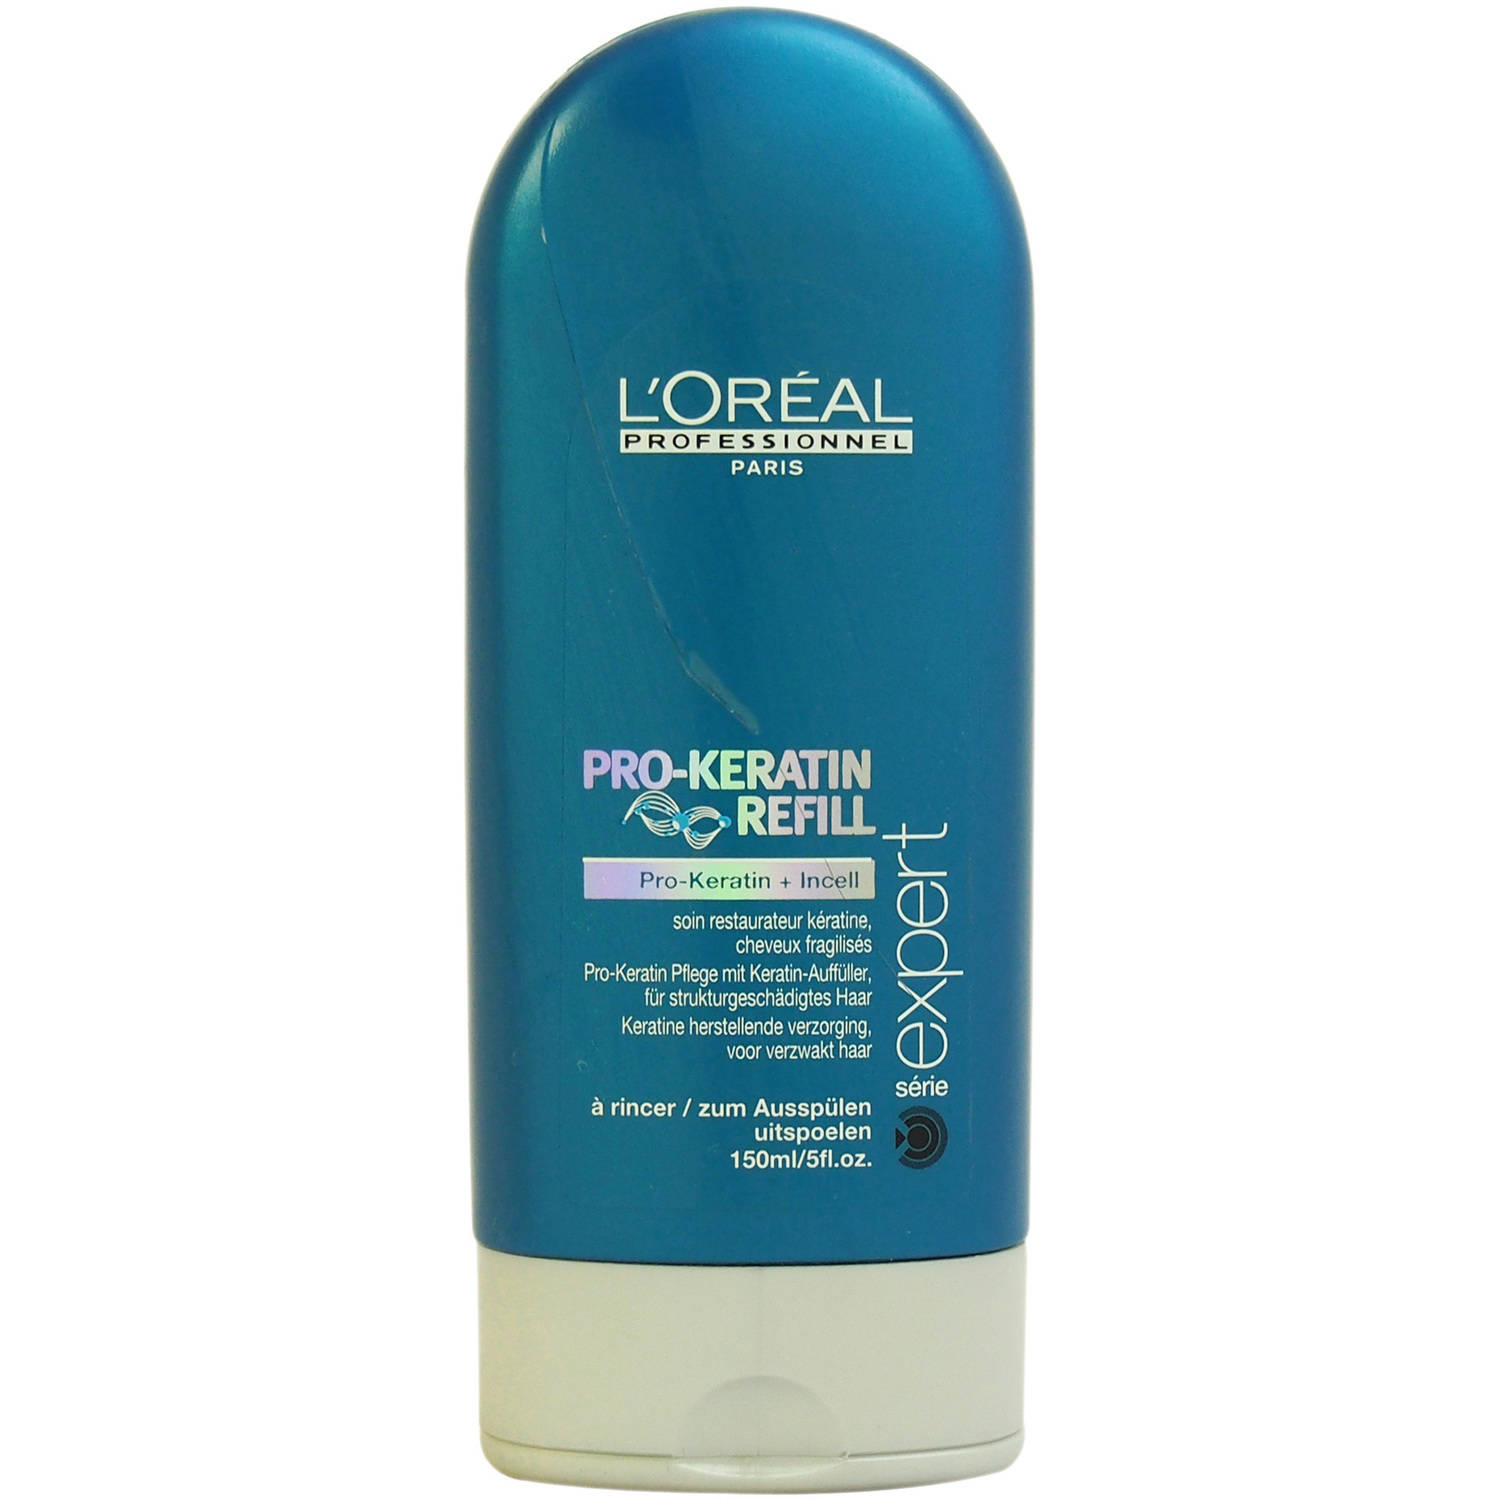 Serie Expert Pro-Keratin Refill Correcting Care Conditioner by L'Oreal Professional for Unisex, 5 oz